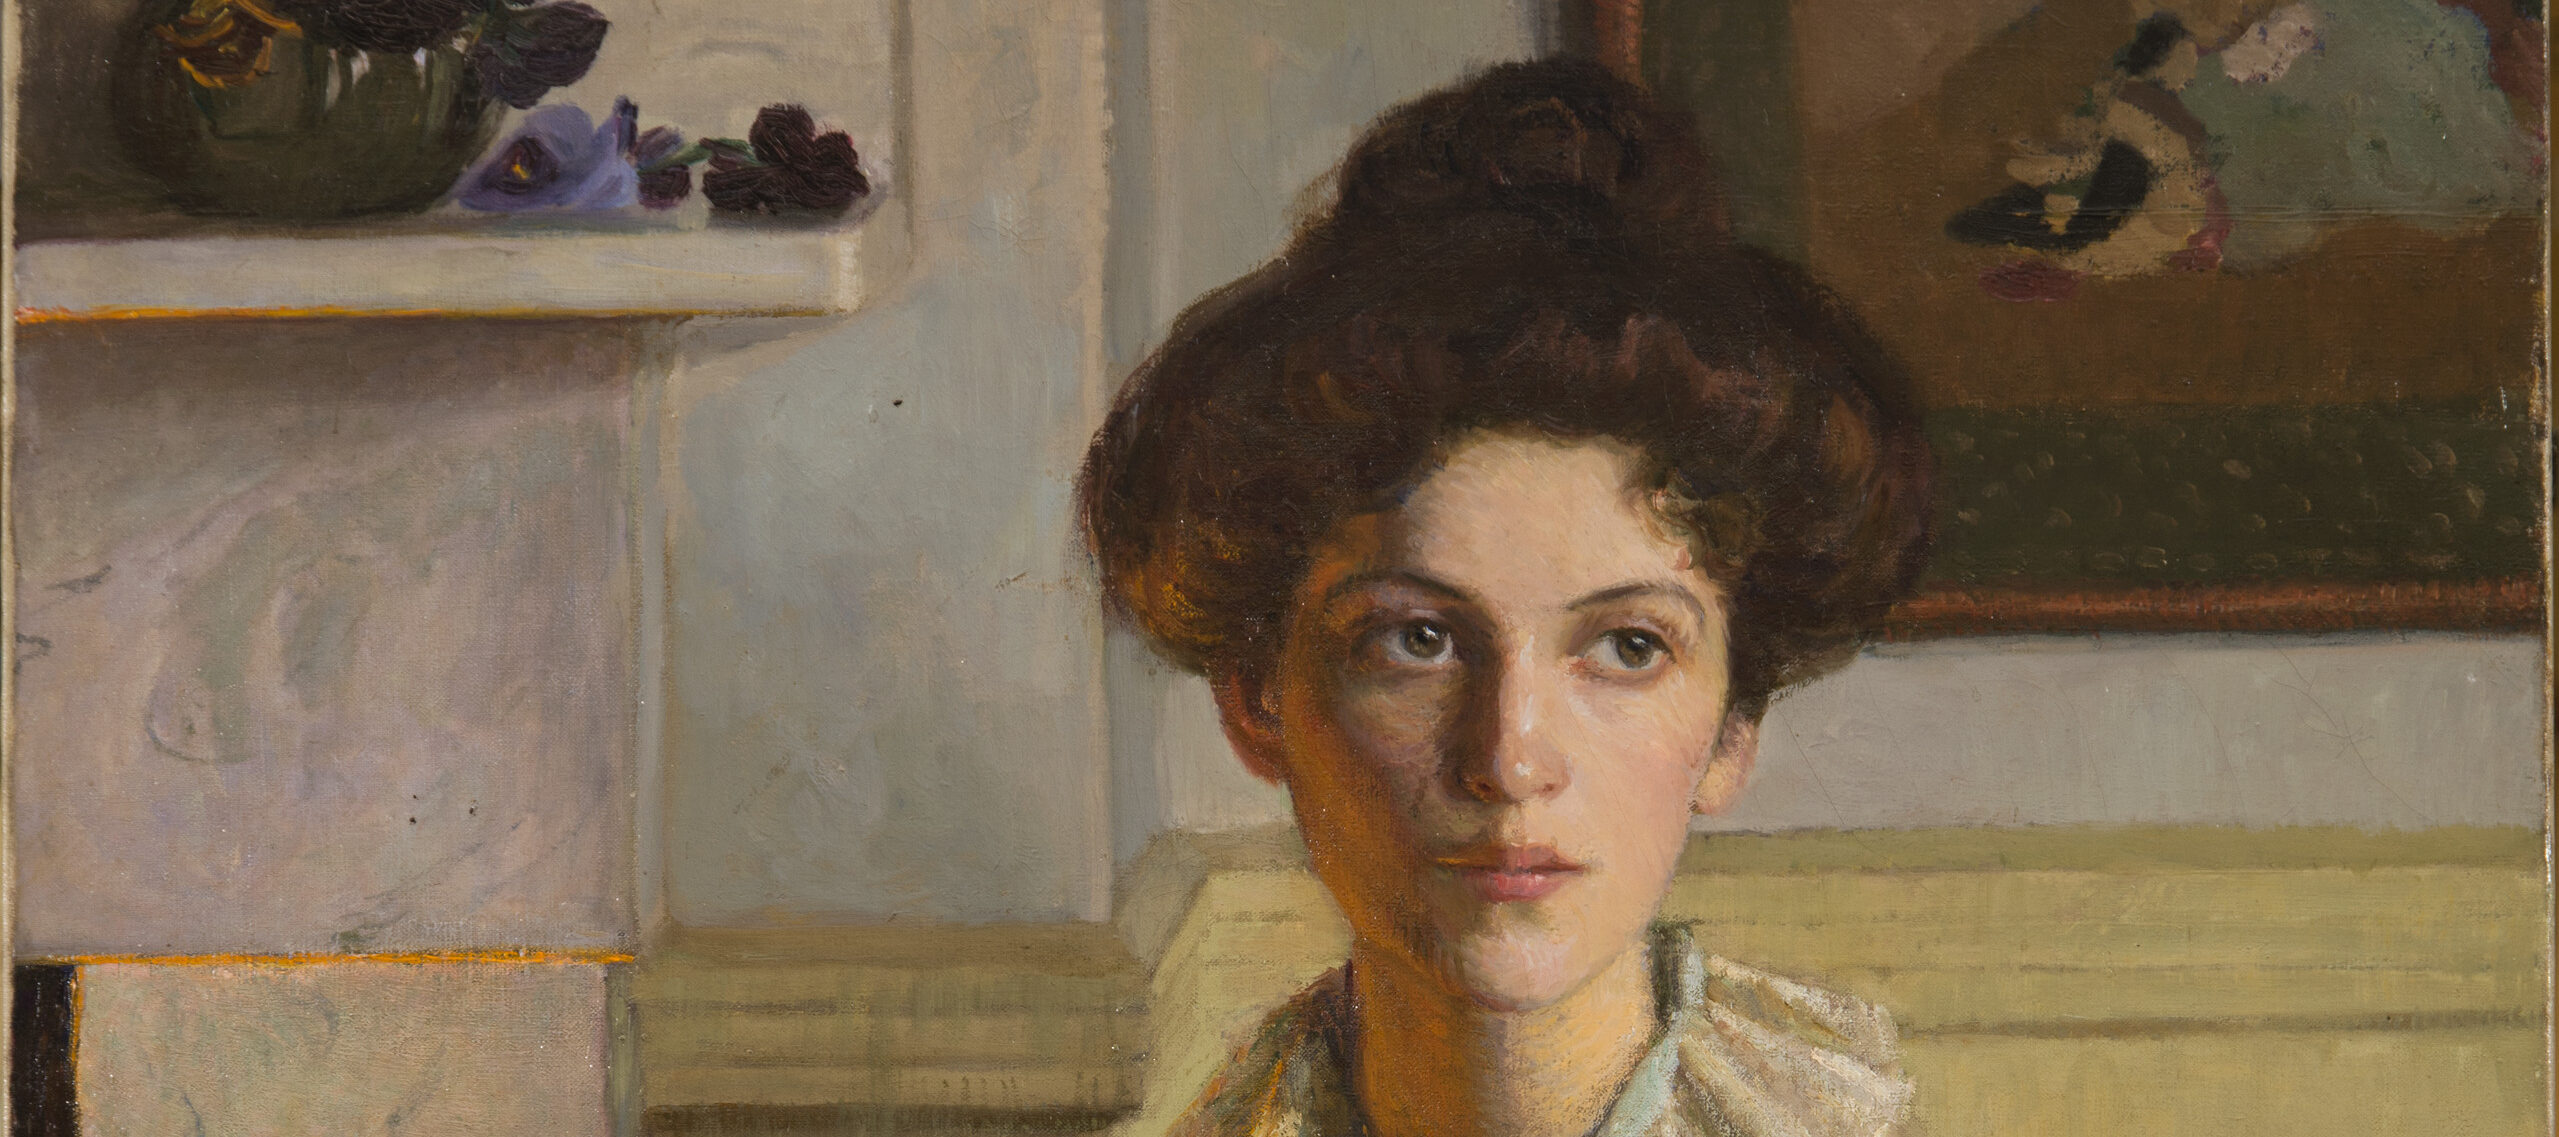 A young woman sits on a chair with her hair in a loose bun, wearing a white lace-trim gown. Her body turns slightly right towards a fireplace, its orange glow reflected on her hair and torso. The room is light and clean and a dark bowl overflowing with violets sits on the mantle.